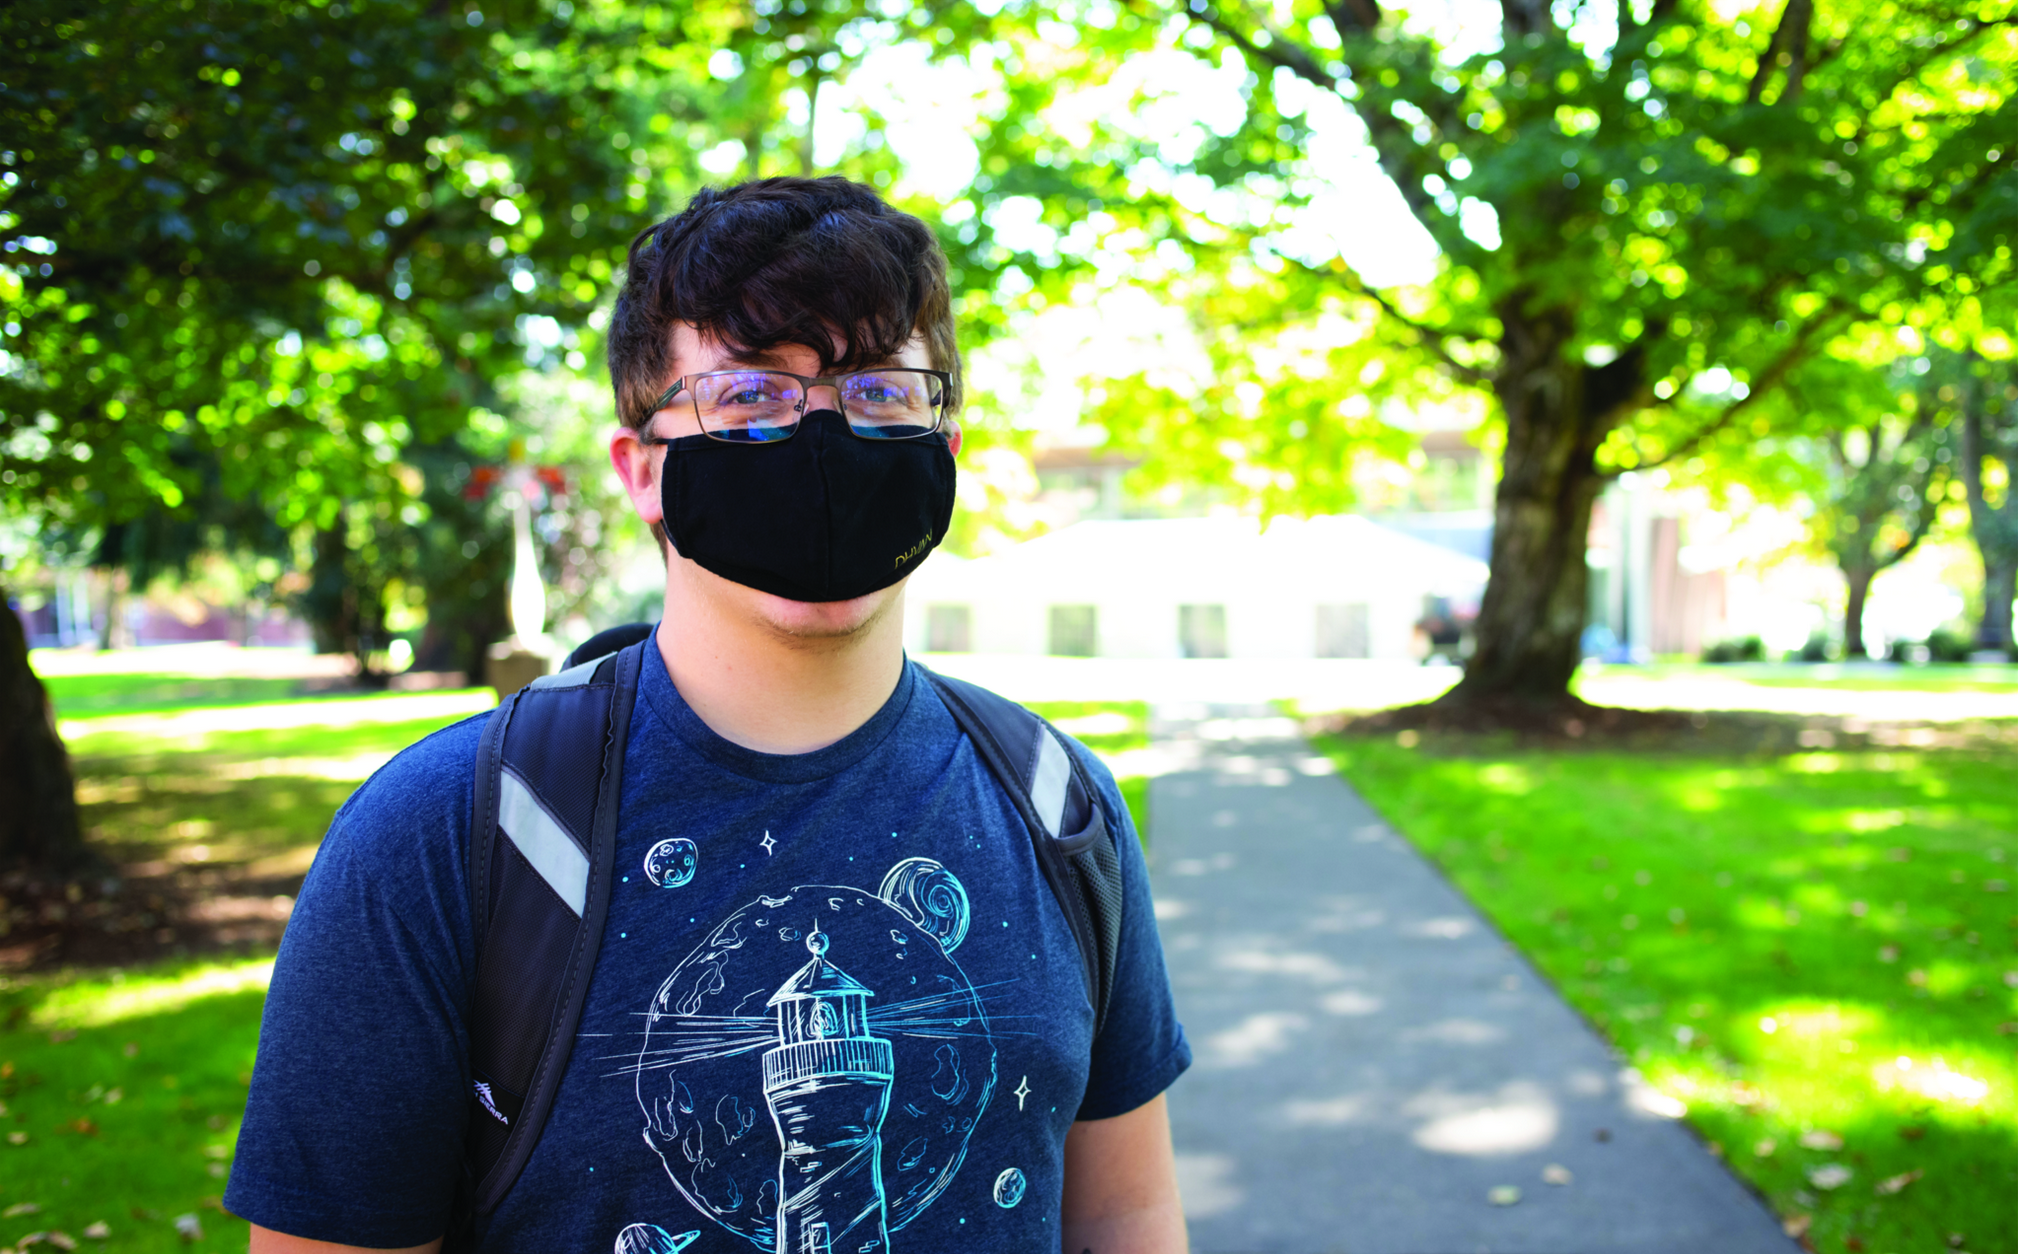 """""""For me, it's hard because it's different. But I need to keep going because if I can't get through the challenge right now ... that would make me nervous about challenges later."""" — Zachary Van Manen '23"""